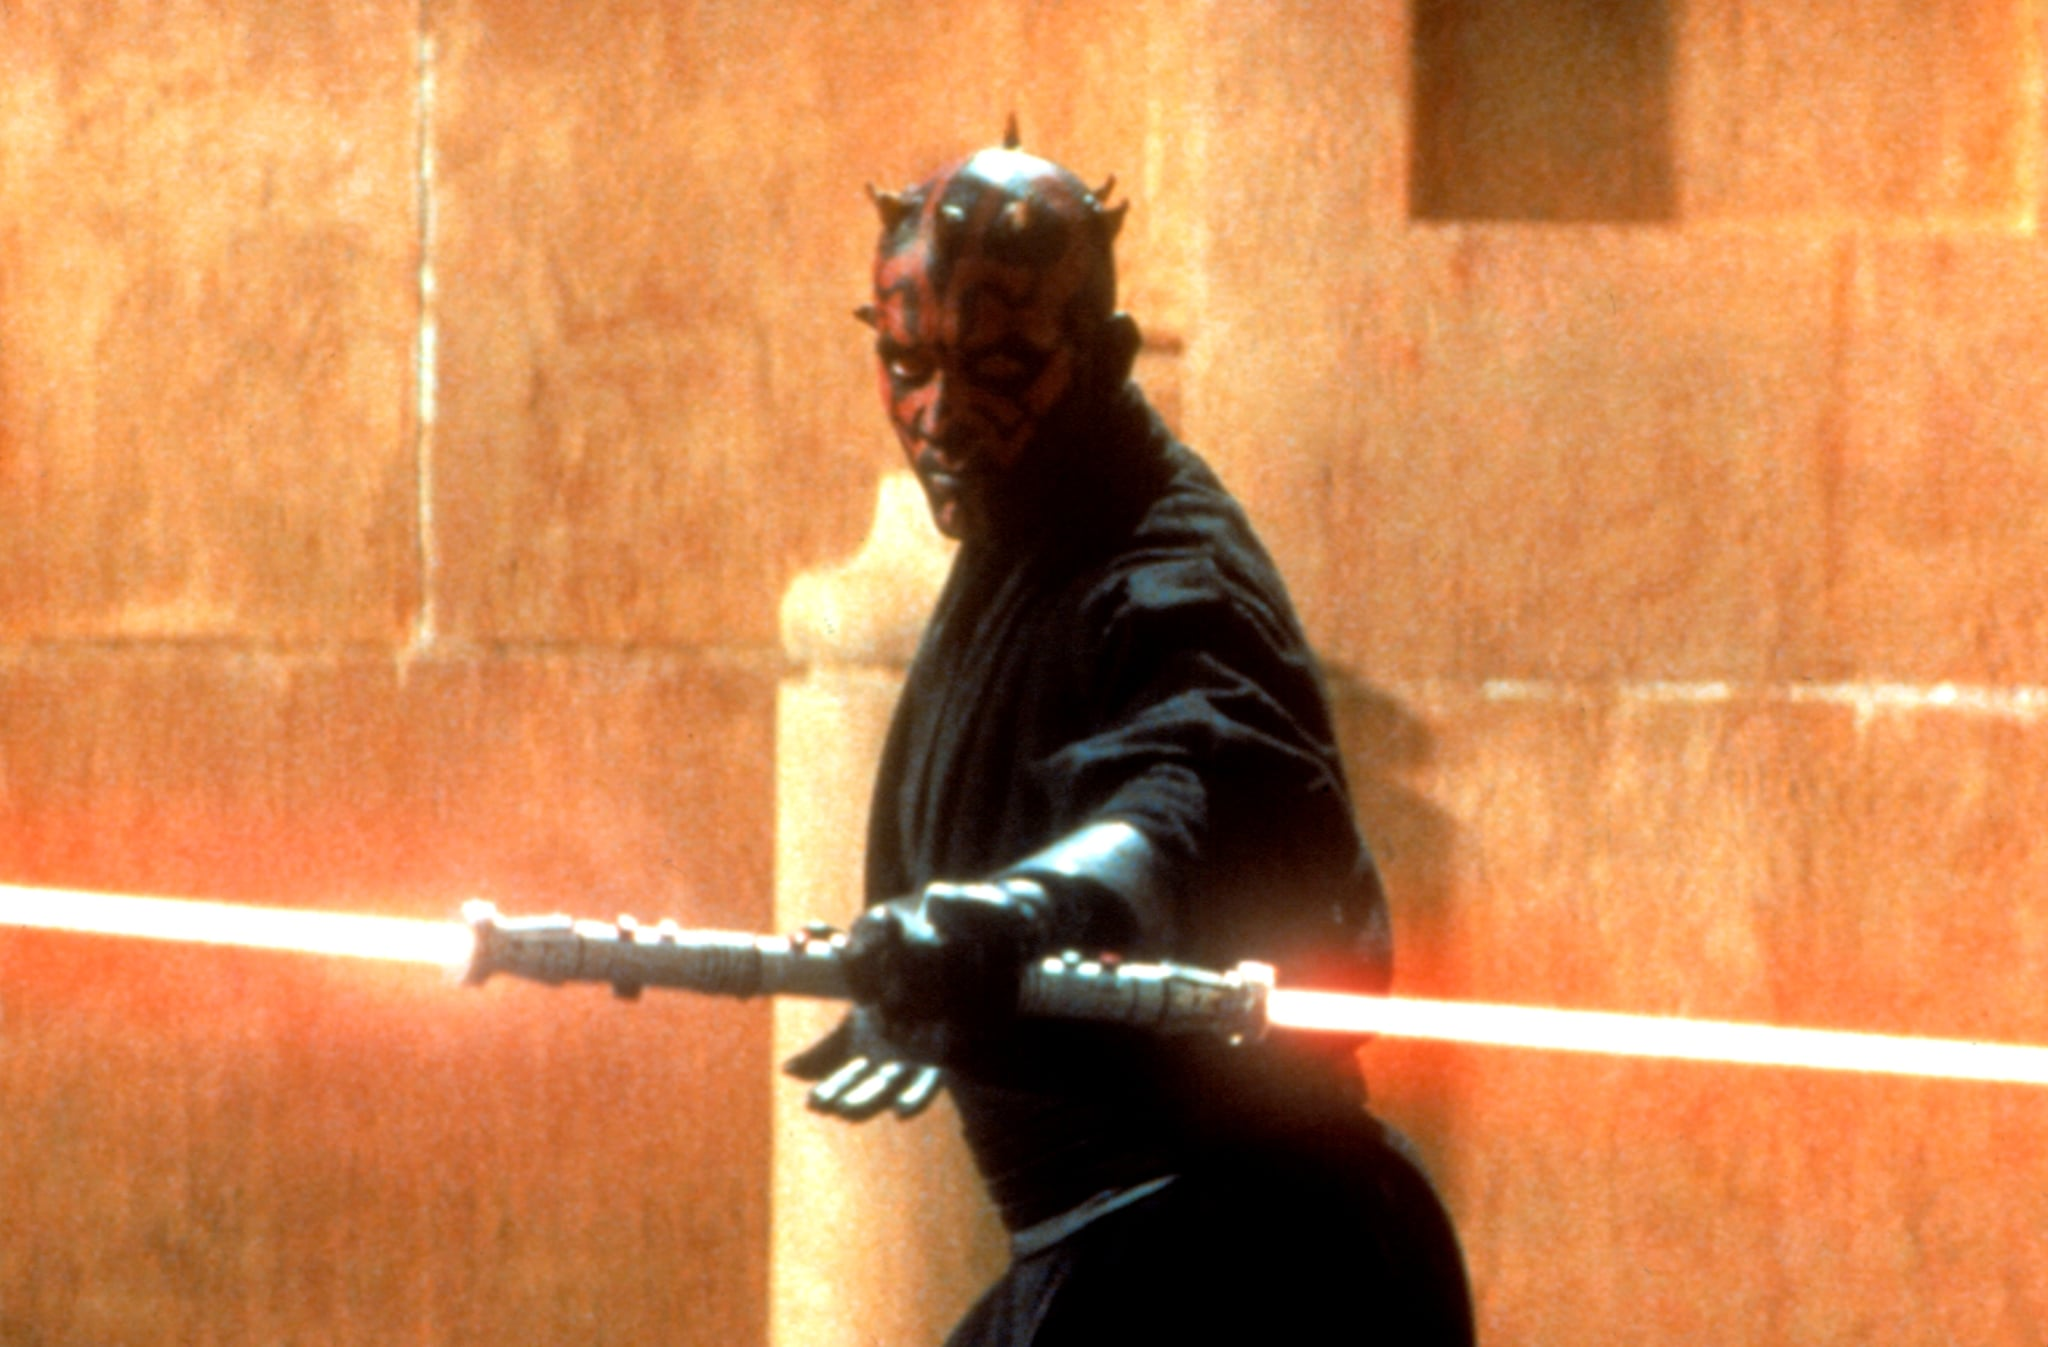 STAR WARS: EPISODE I - THE PHANTOM MENACE, Ray Park, 1999. TM and copyright Twentieth Century Fox Film Corporation. All rights reserved./Courtesy Everett Collection